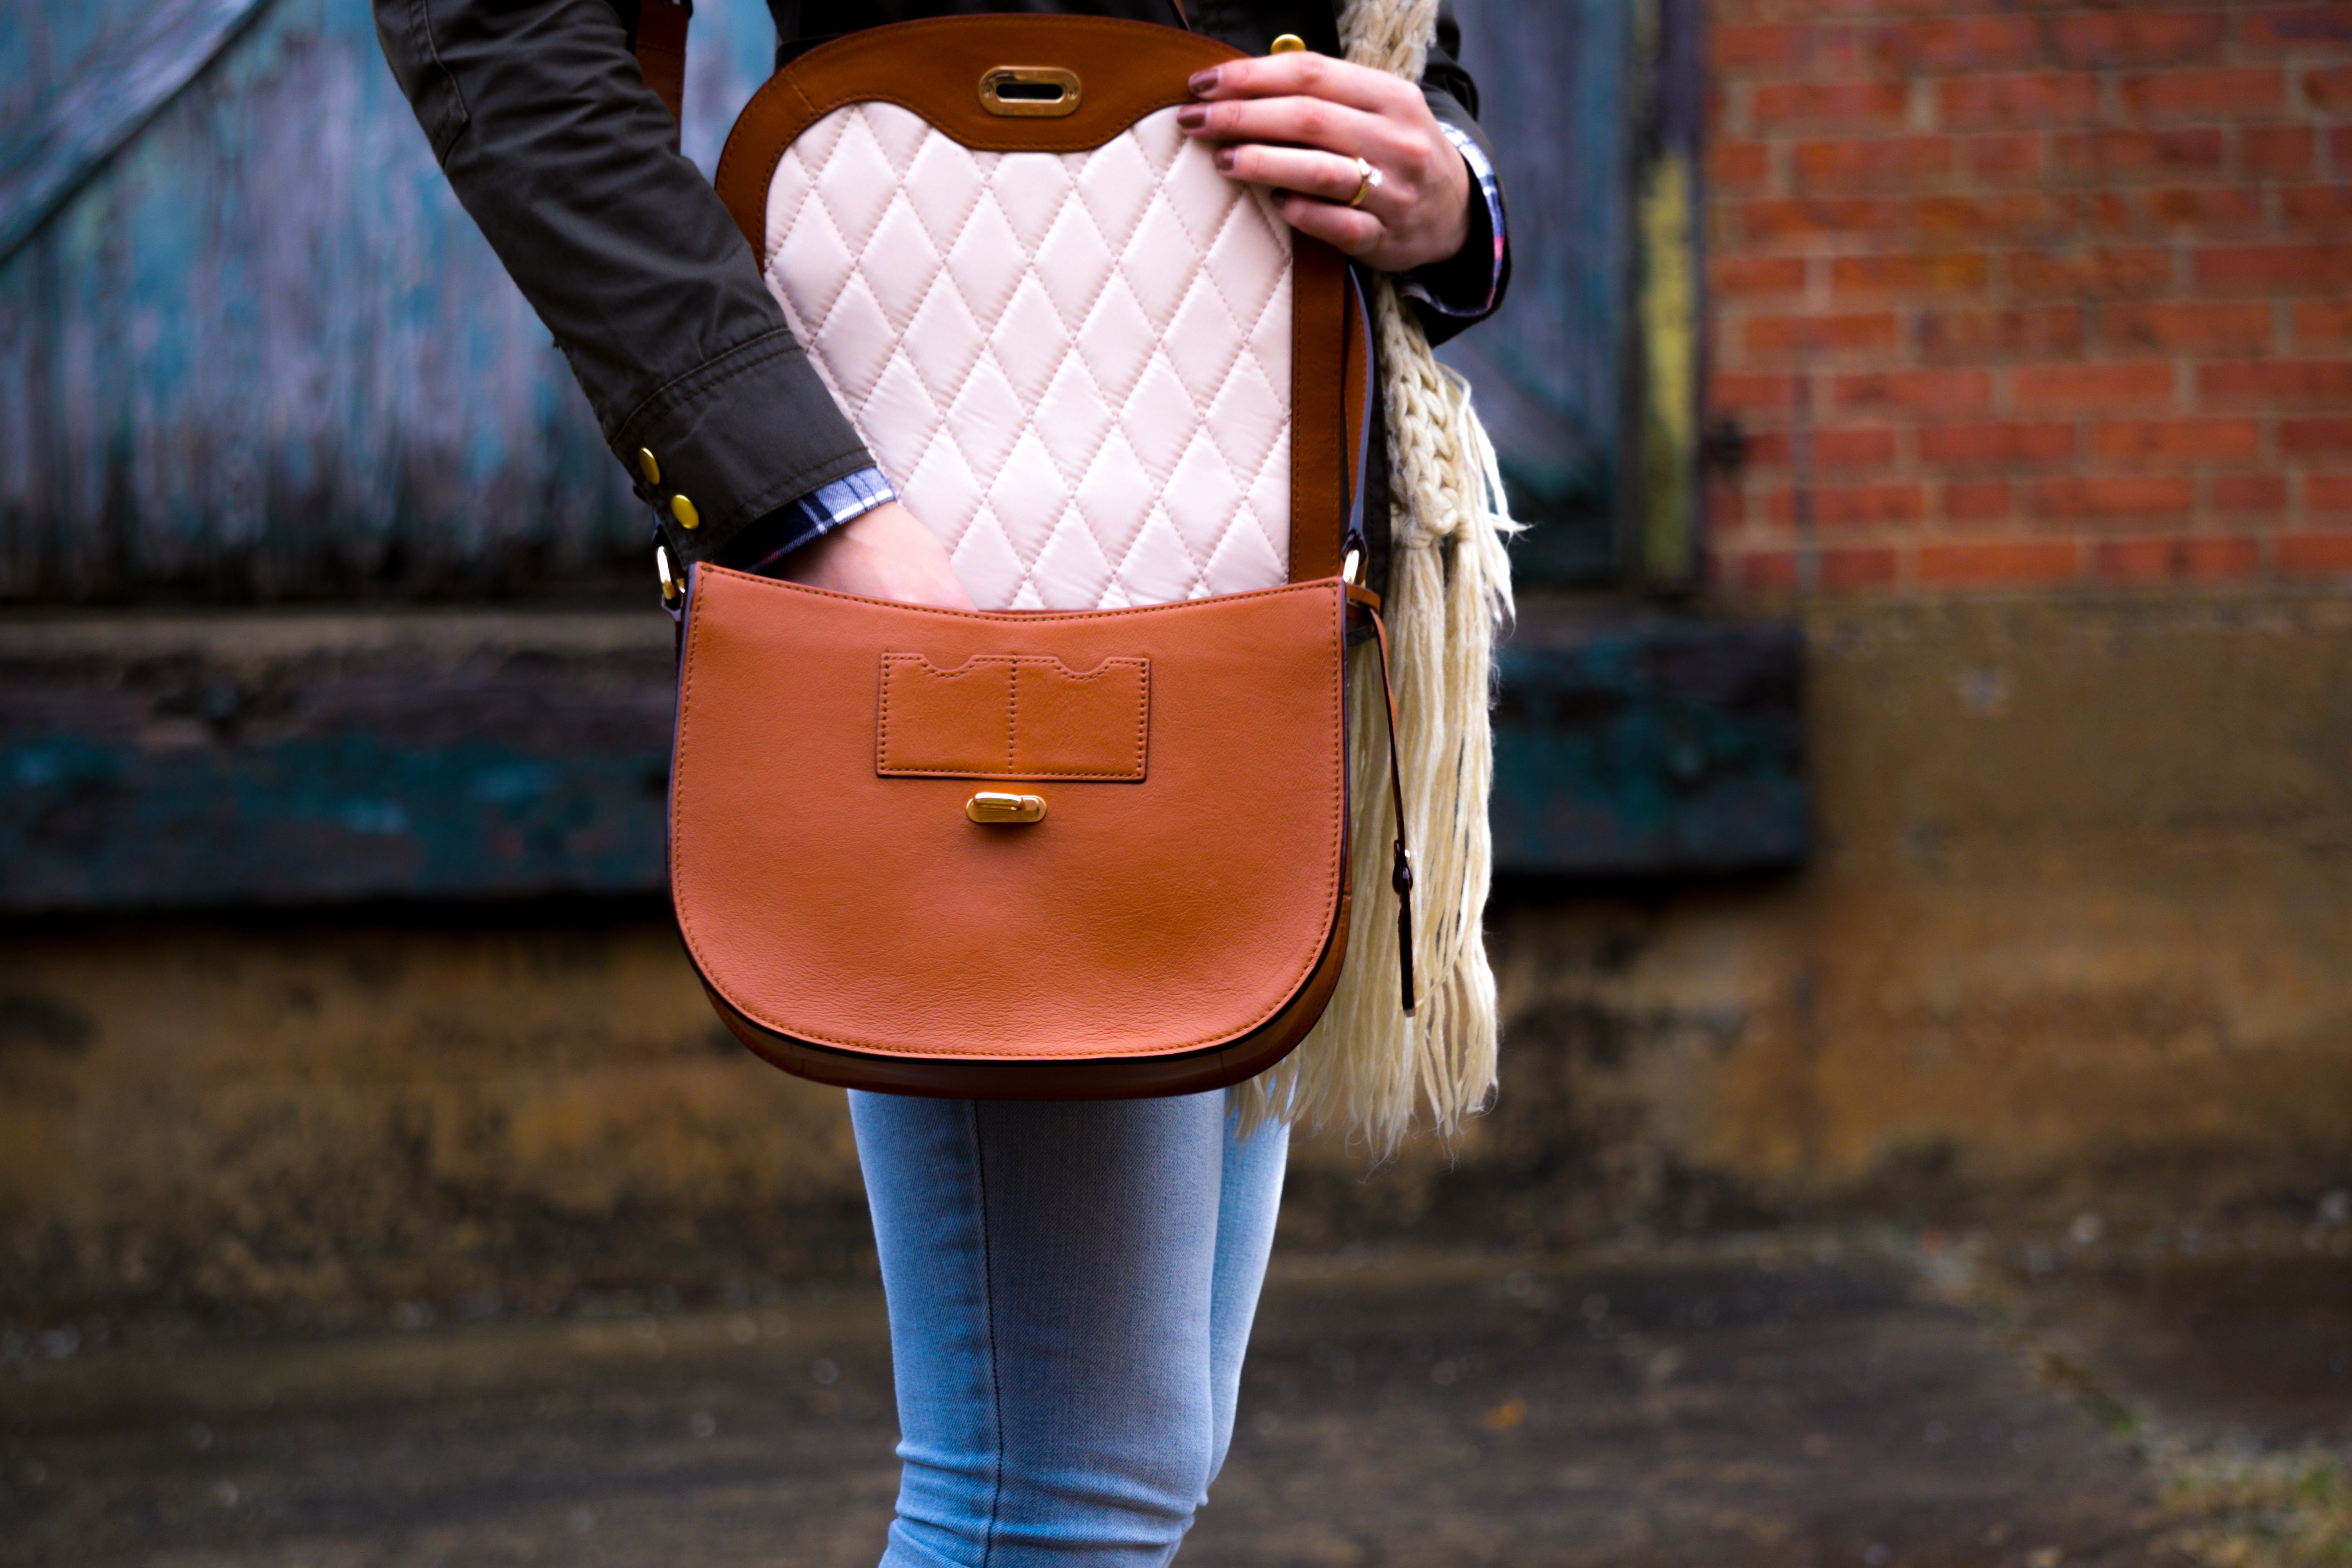 Woman reaching into her fashionable purse outside